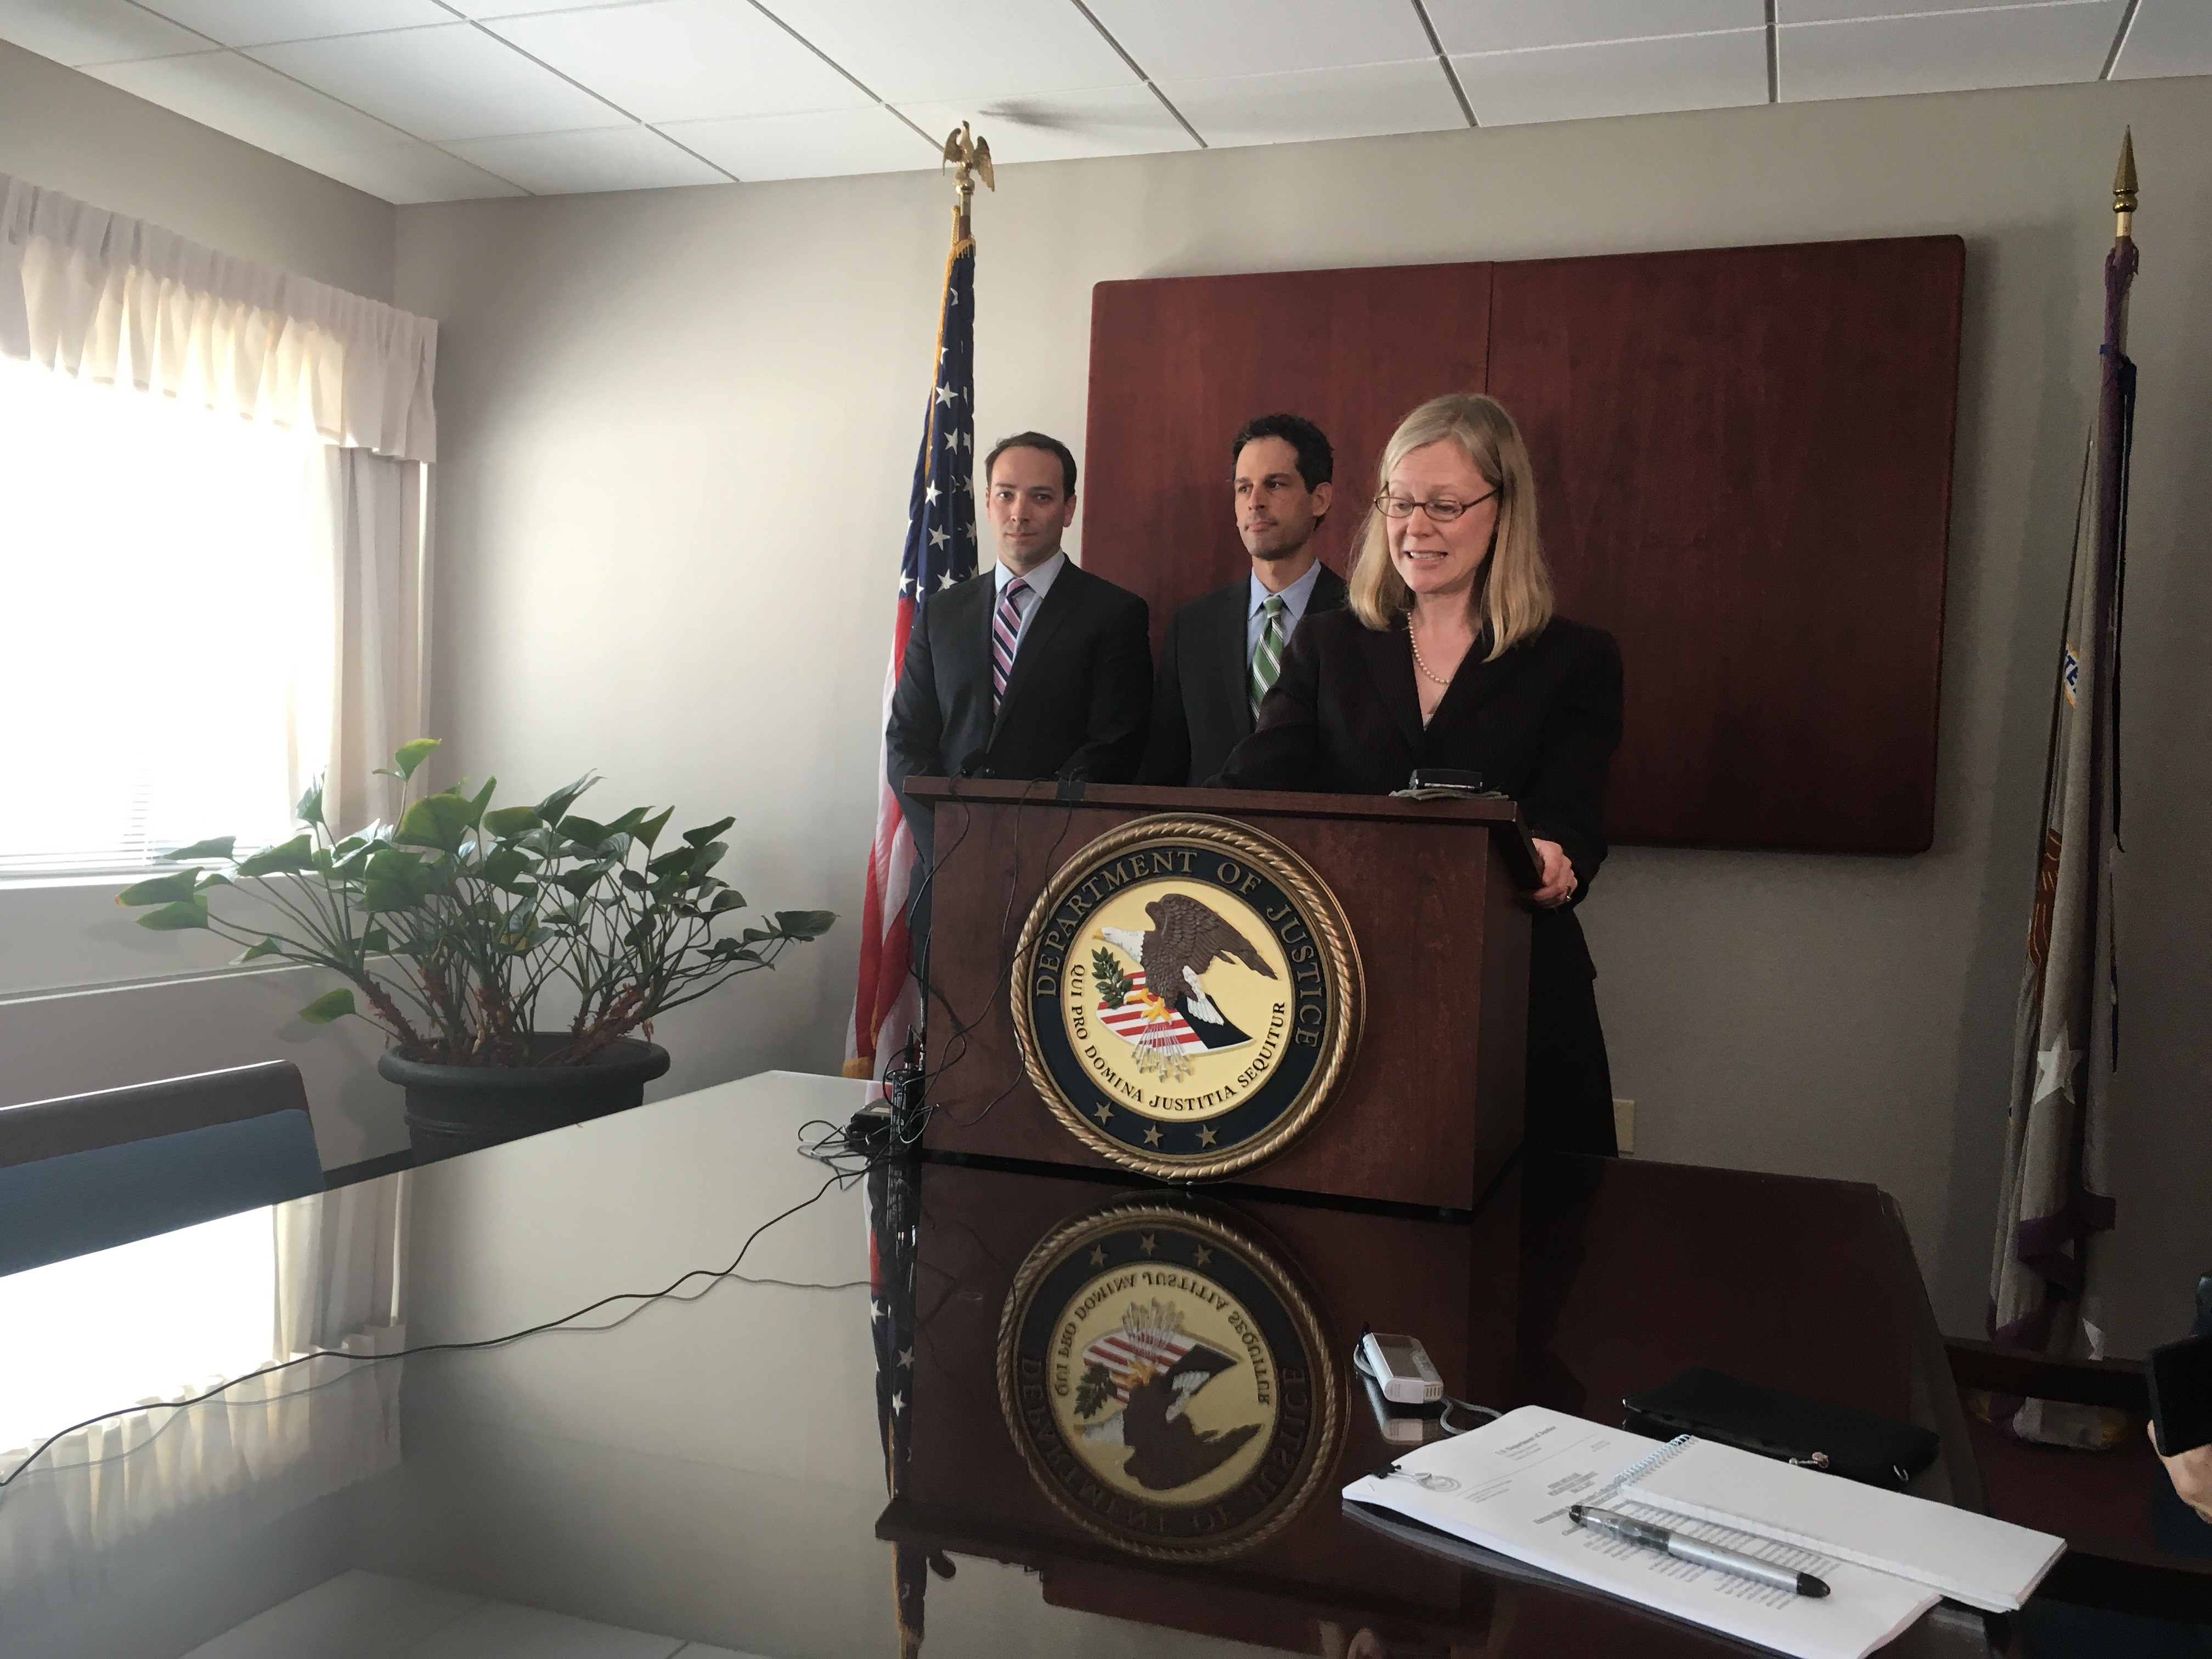 a whistleblower has brought suit against the community